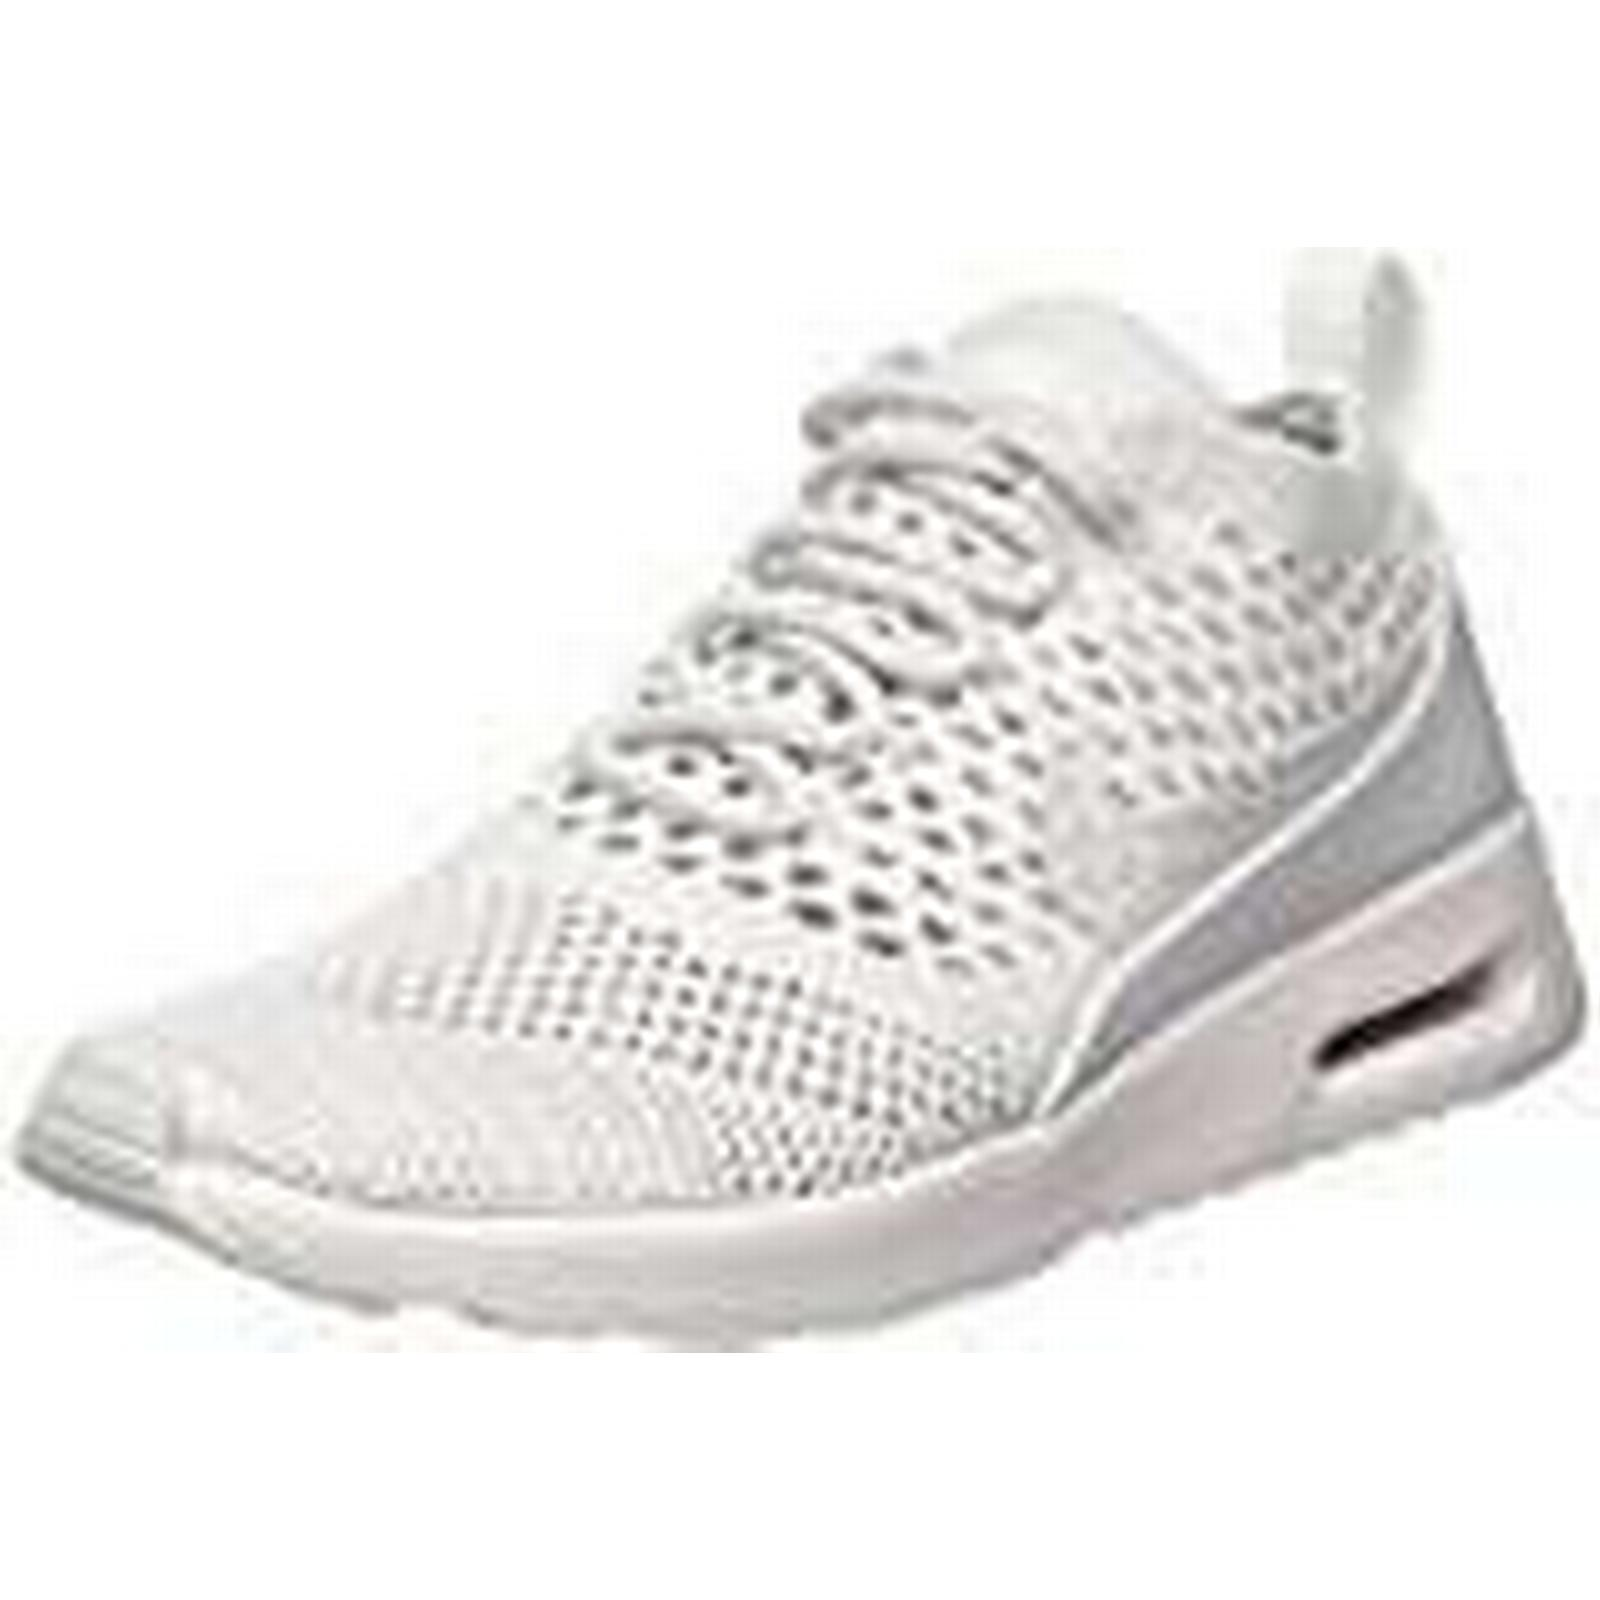 outlet store 4e6bd db118 ... get nike womens w air max thea ultra fk gymnastics shoes platinum white  off white pure